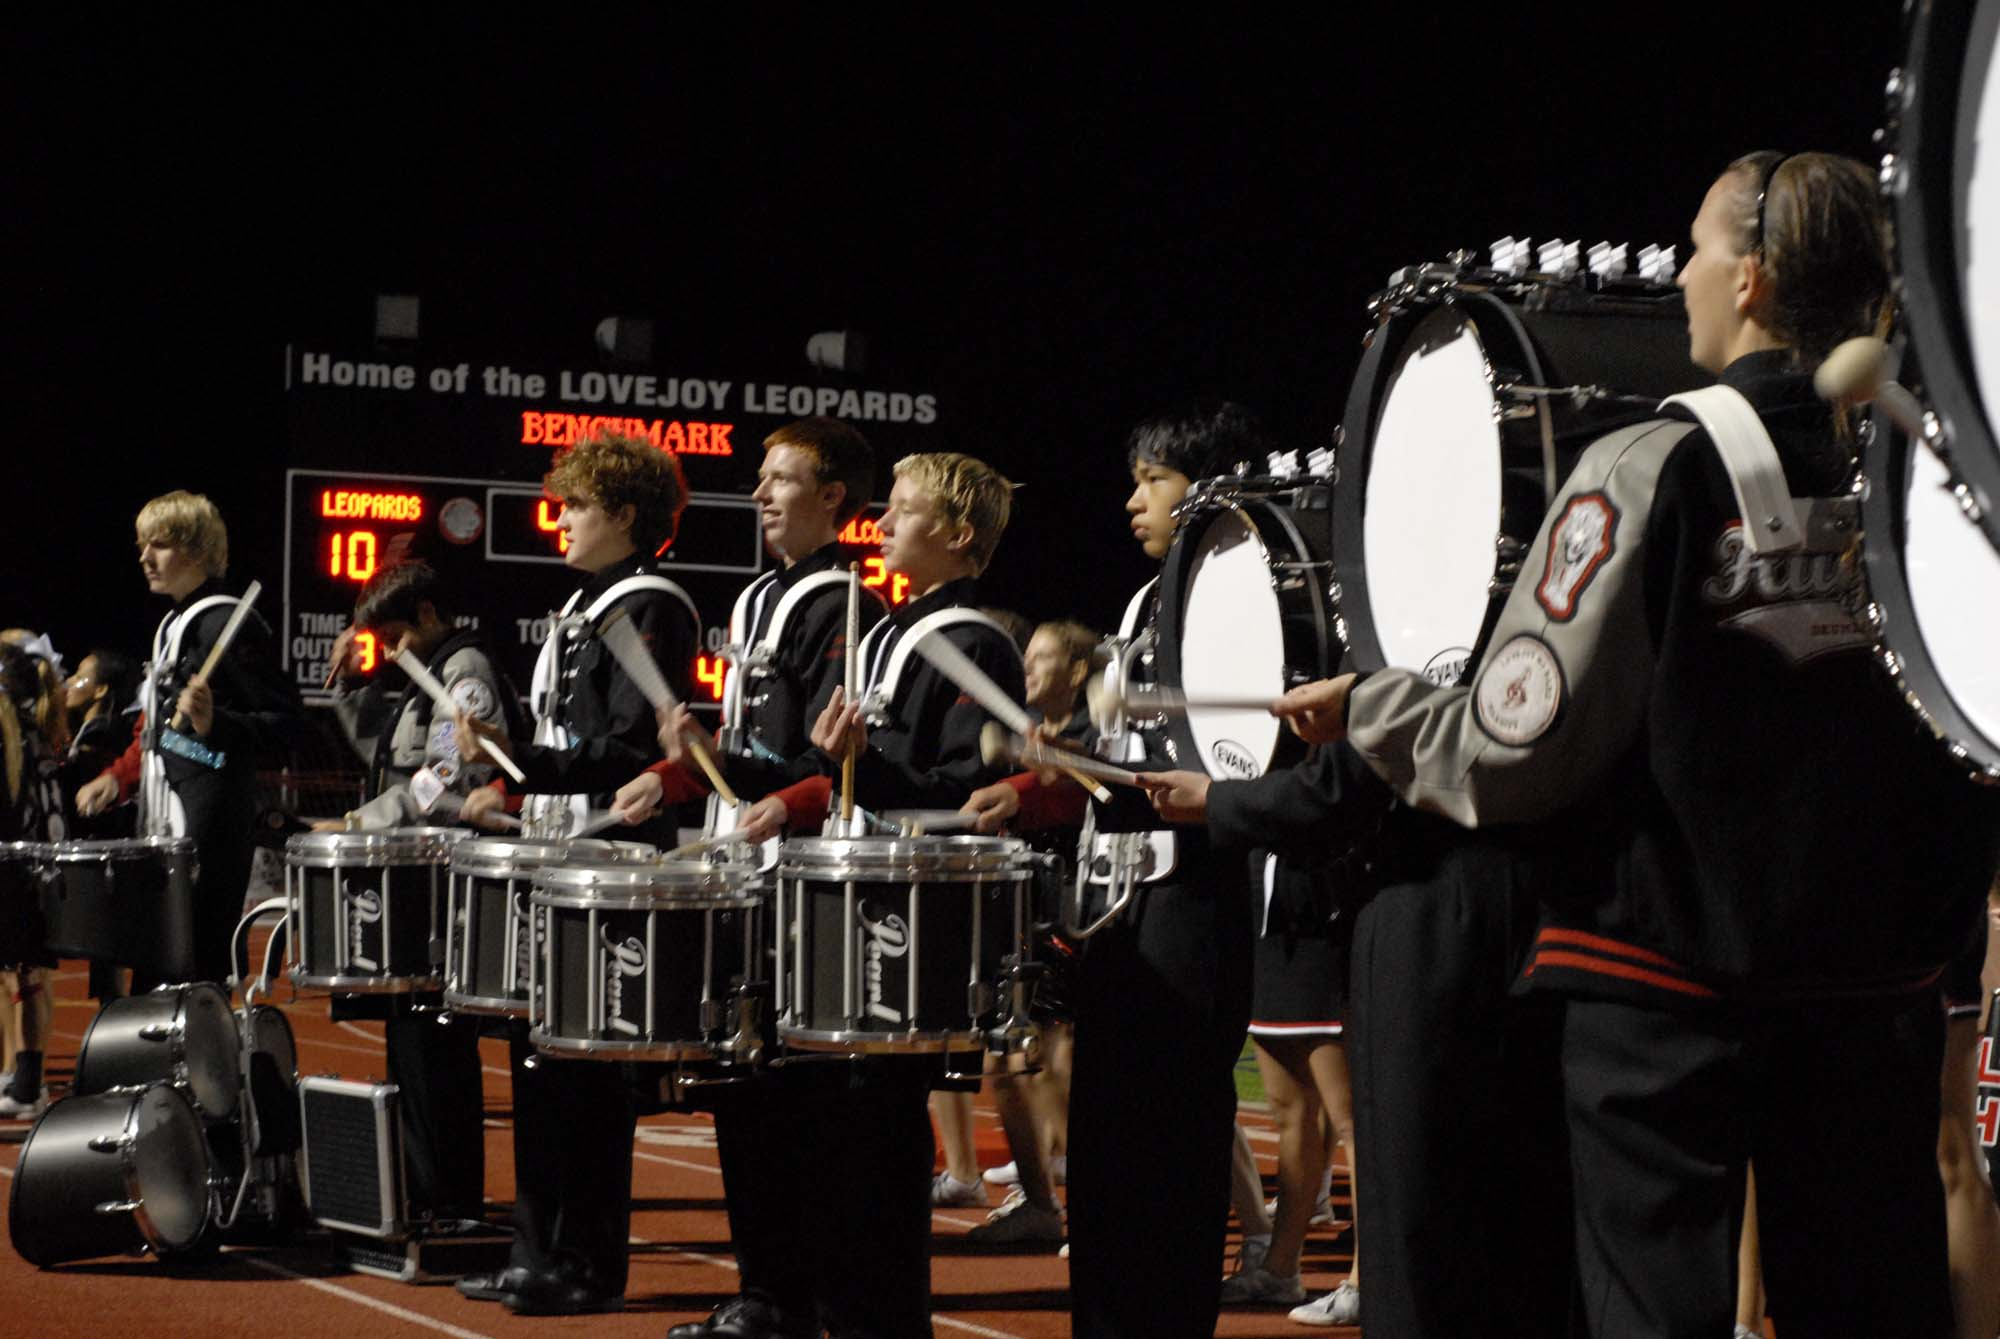 The drum line plays